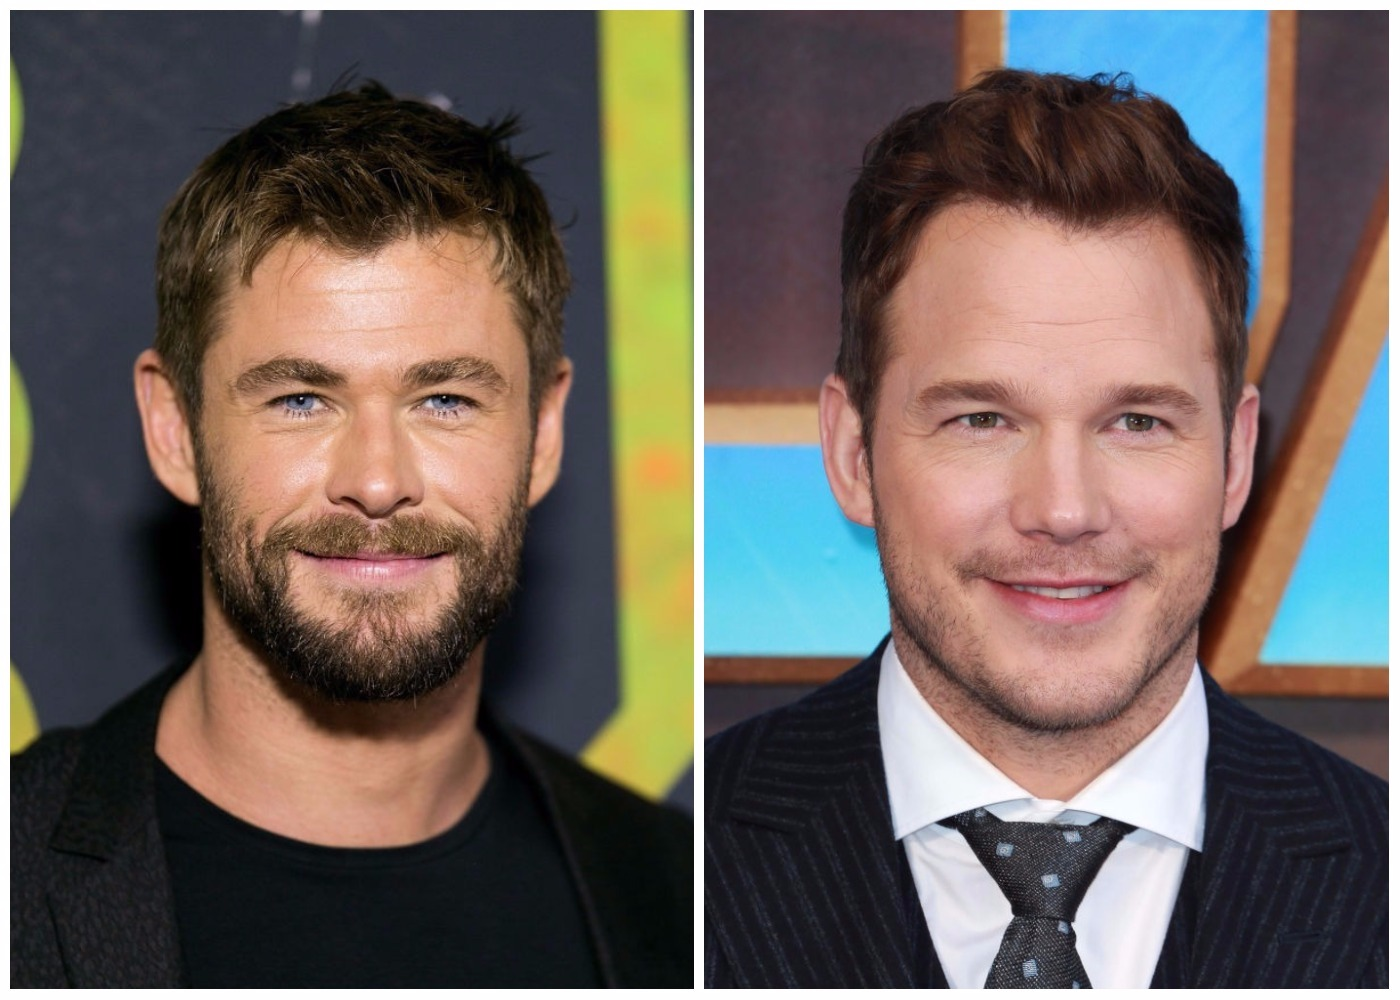 Chris Hemsworth doesn't just like Chris Pratt — he wants to BE Chris Pratt